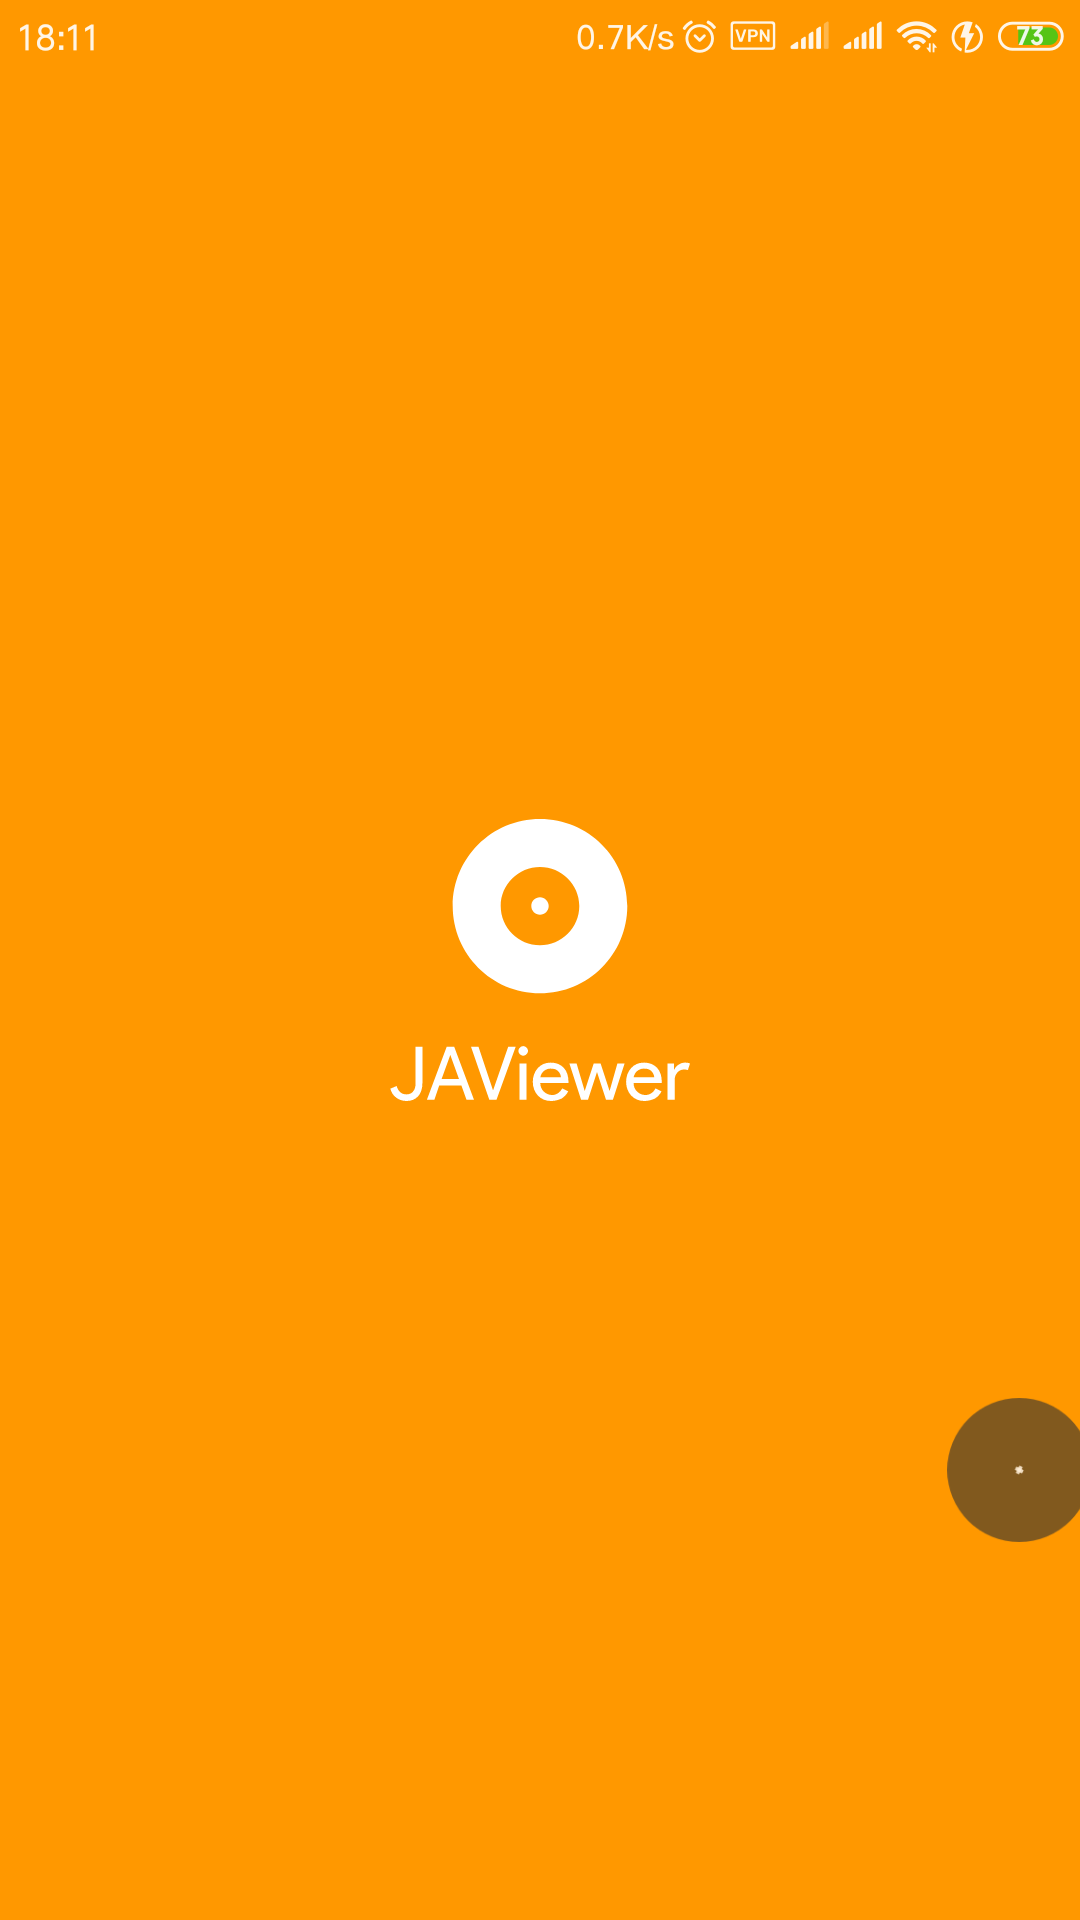 Screenshot_2018-12-21-18-11-47-397_io.github.javiewer.png